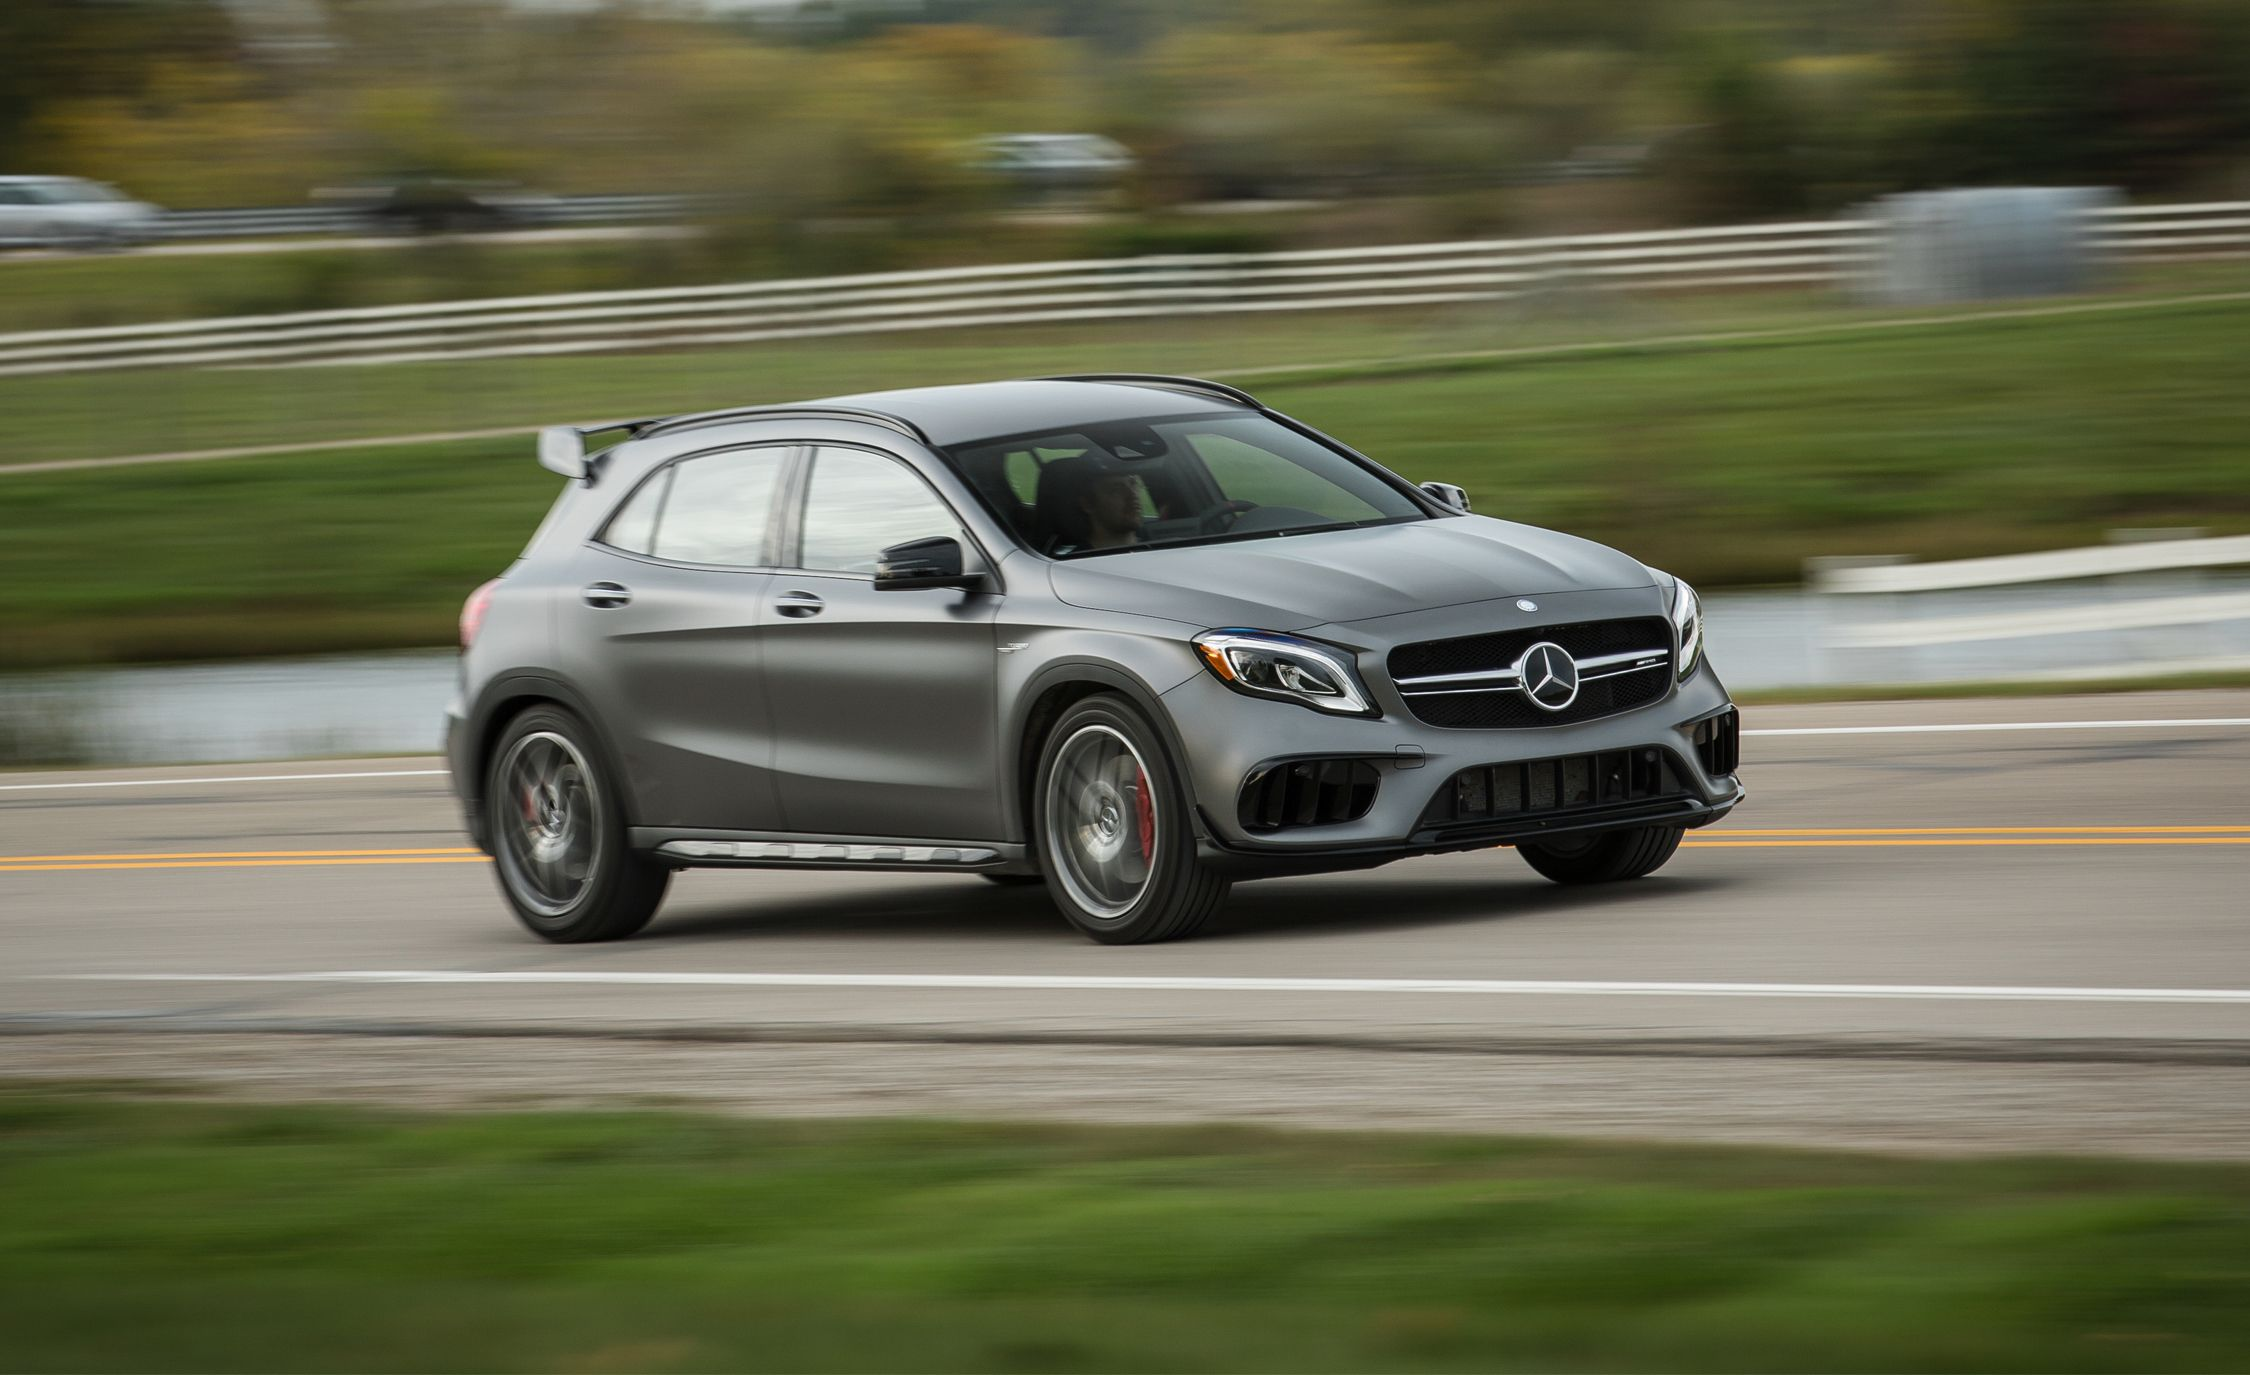 2018 mercedes amg gla45 4matic test review car and driver. Black Bedroom Furniture Sets. Home Design Ideas